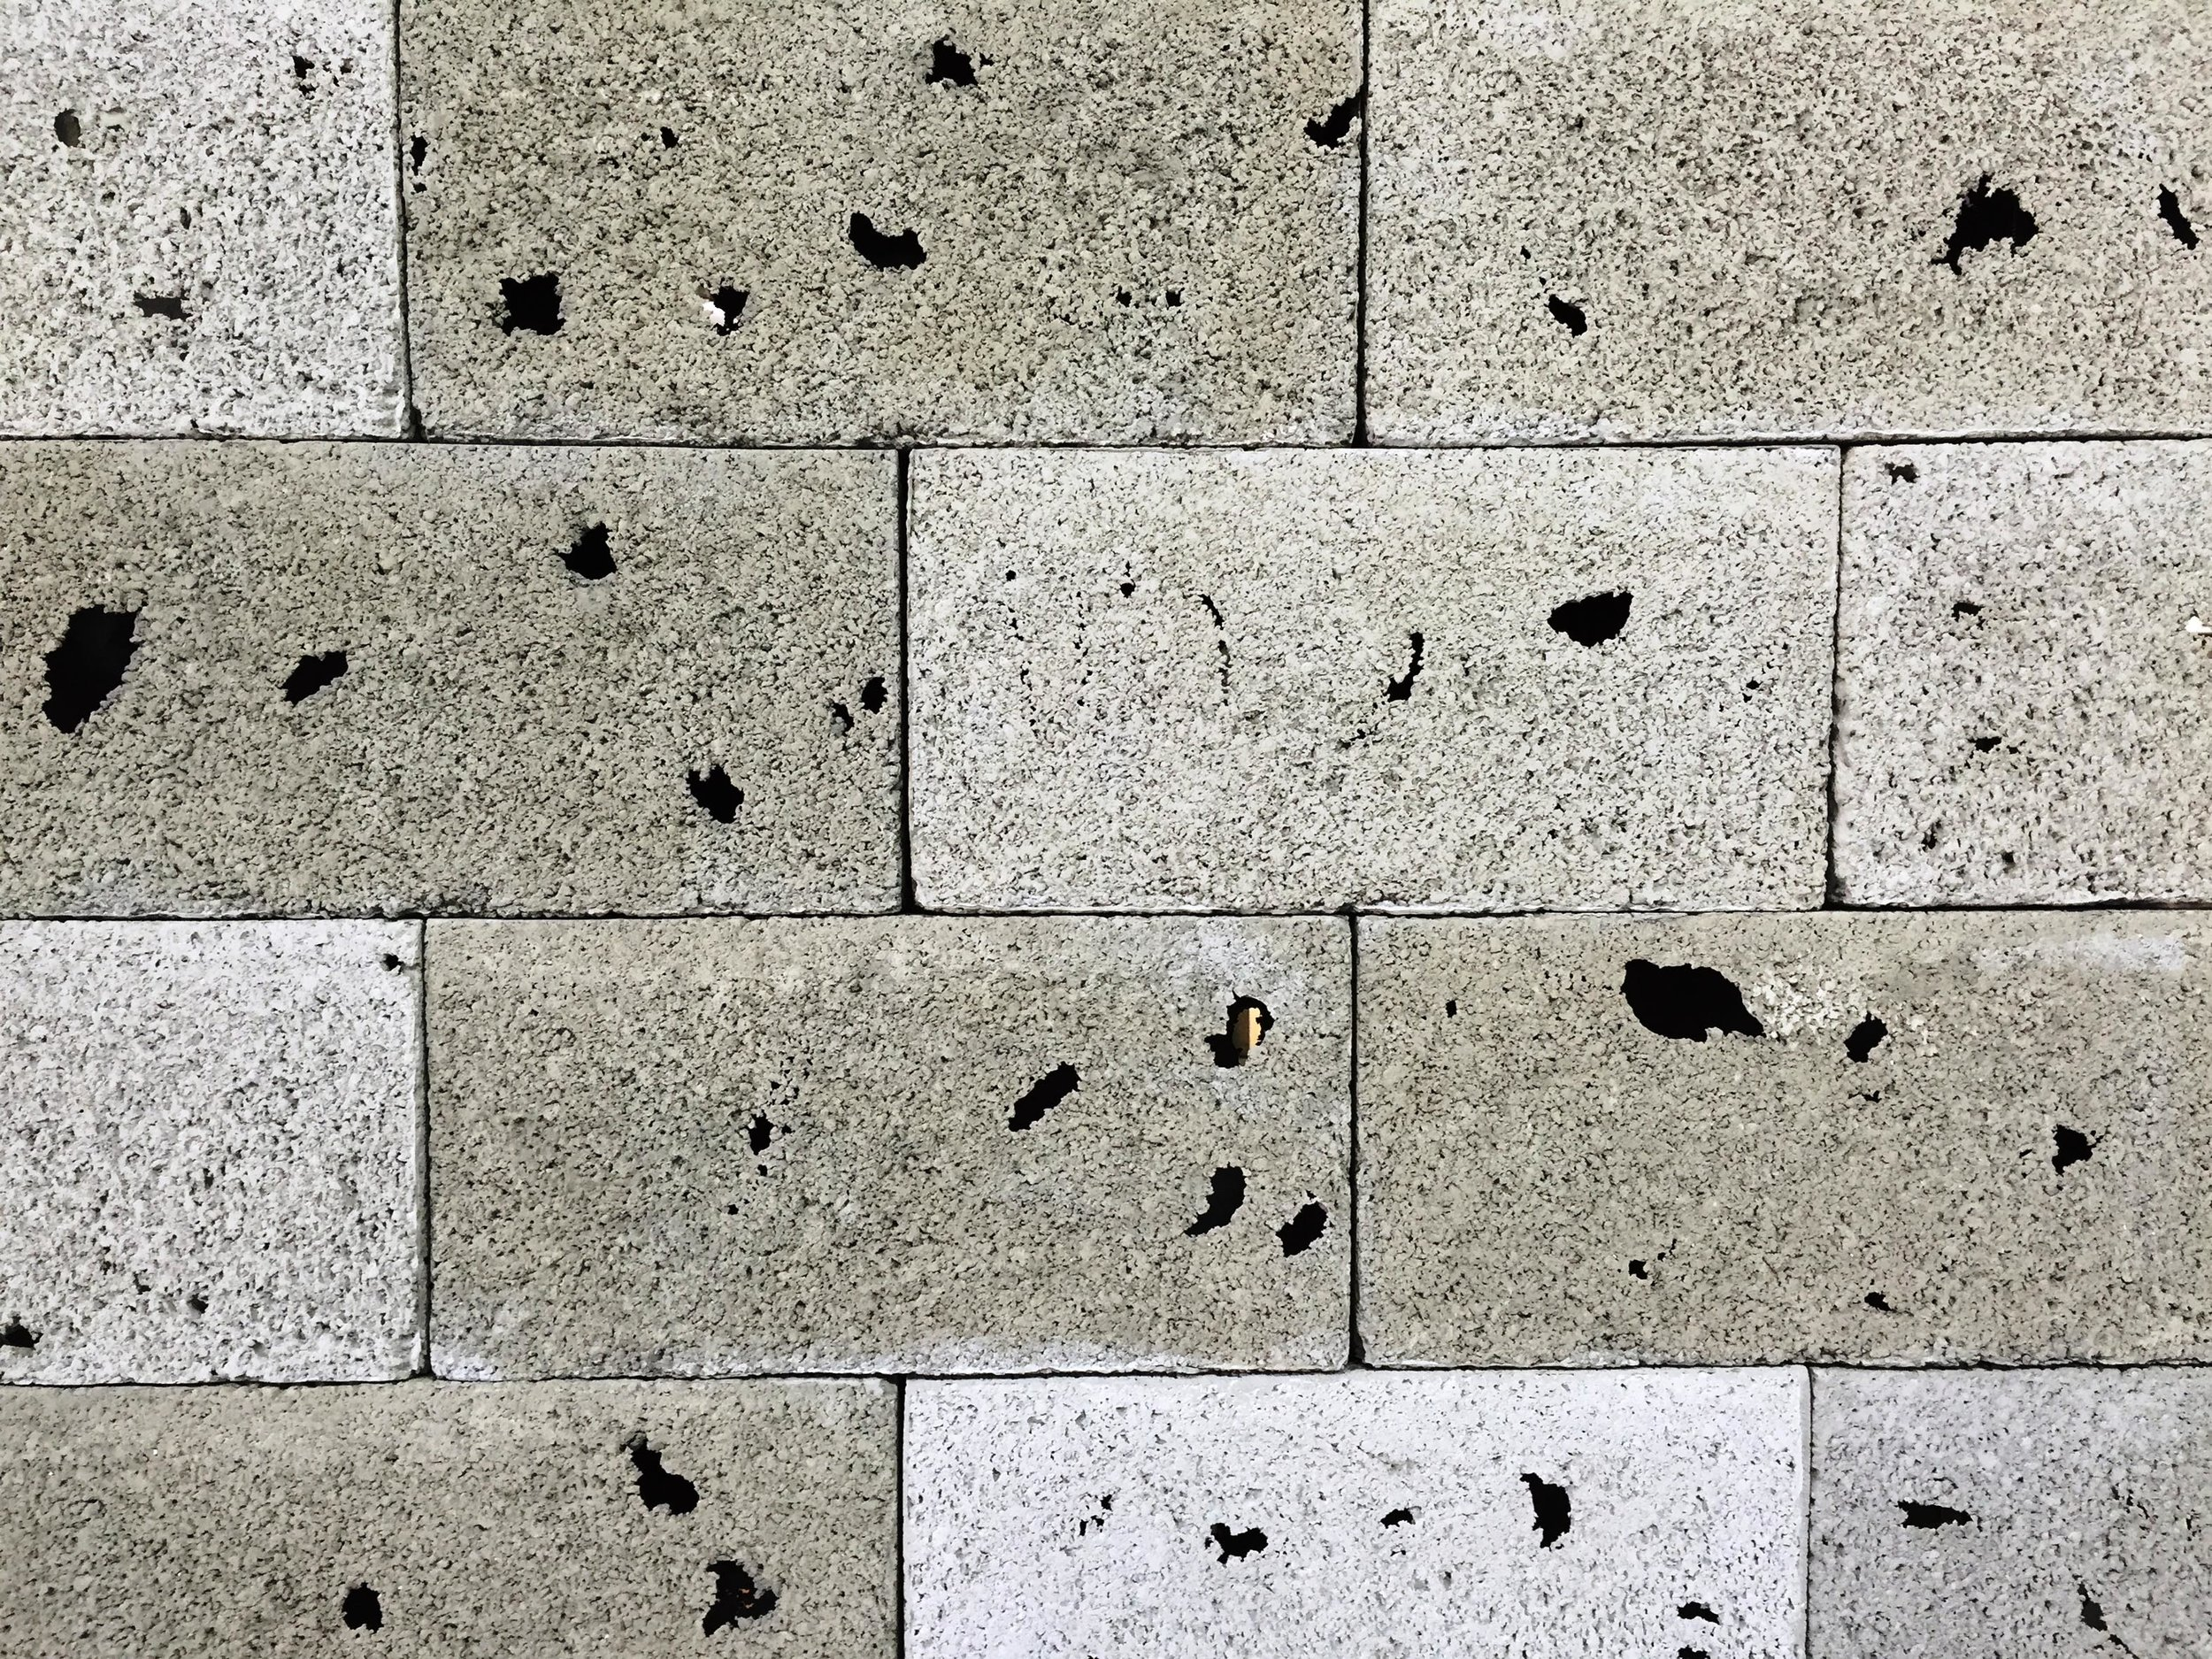 Close-up of seemingly strong and solid wall shows that it is actually delicate and see-through. Photo by Haimi Fenichel.